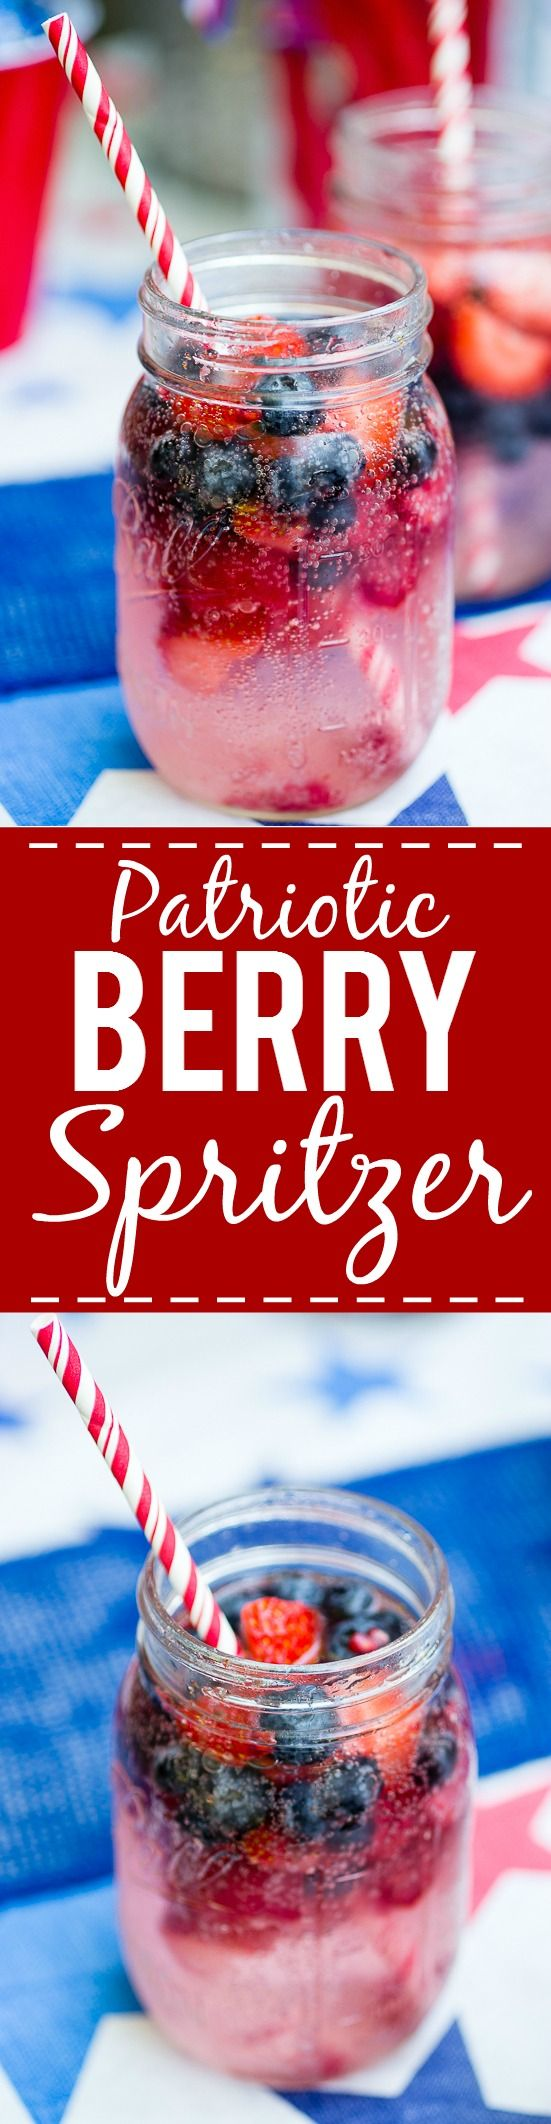 Patriotic Berry Spritzer - Fresh and full of sweet berries, this Berry Spritzer is a pretty and refreshing beverage that's patriotic too! Perfect for any occasion and using up ripe Summer berries! Yum! Omg. So good for fresh sweet summer berries. Blueberries, strawberries, raspberries....